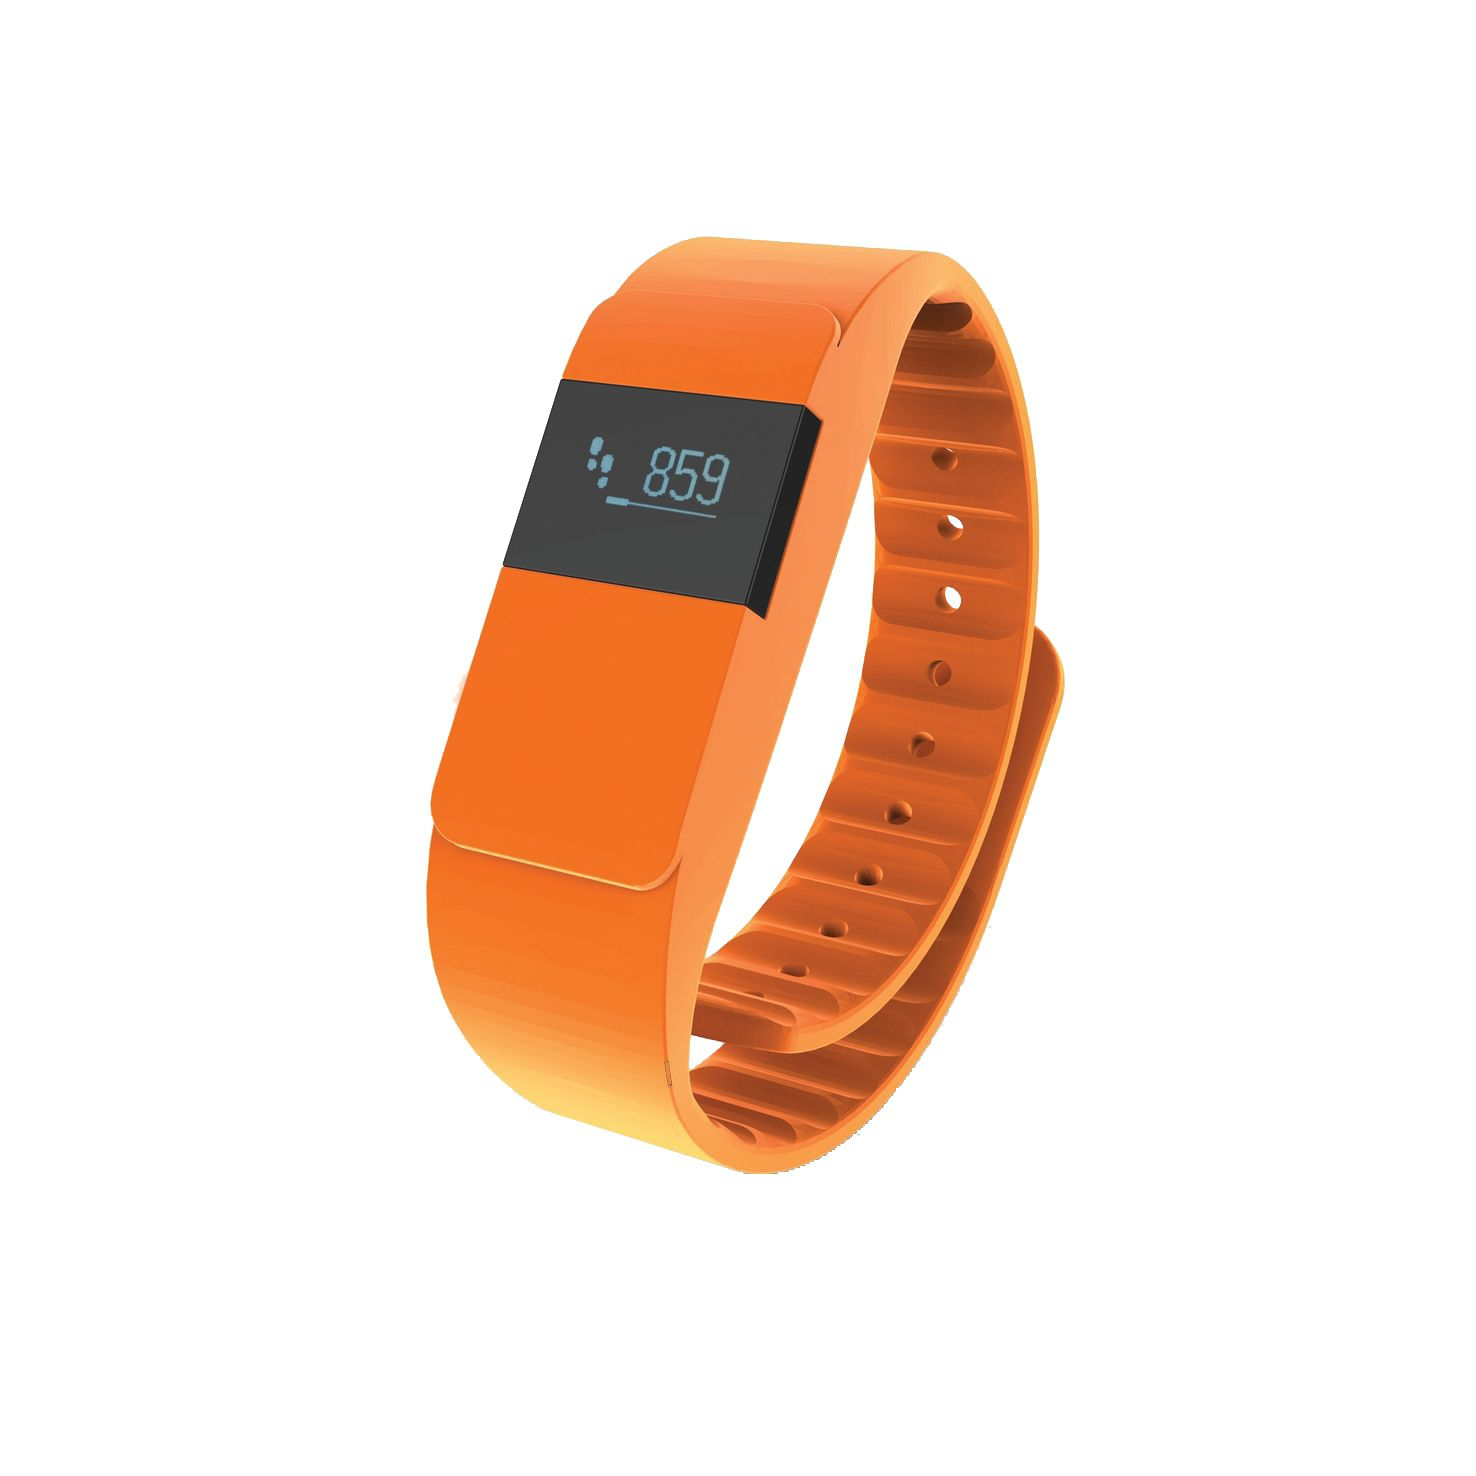 Oranje Activity tracker bedrukken